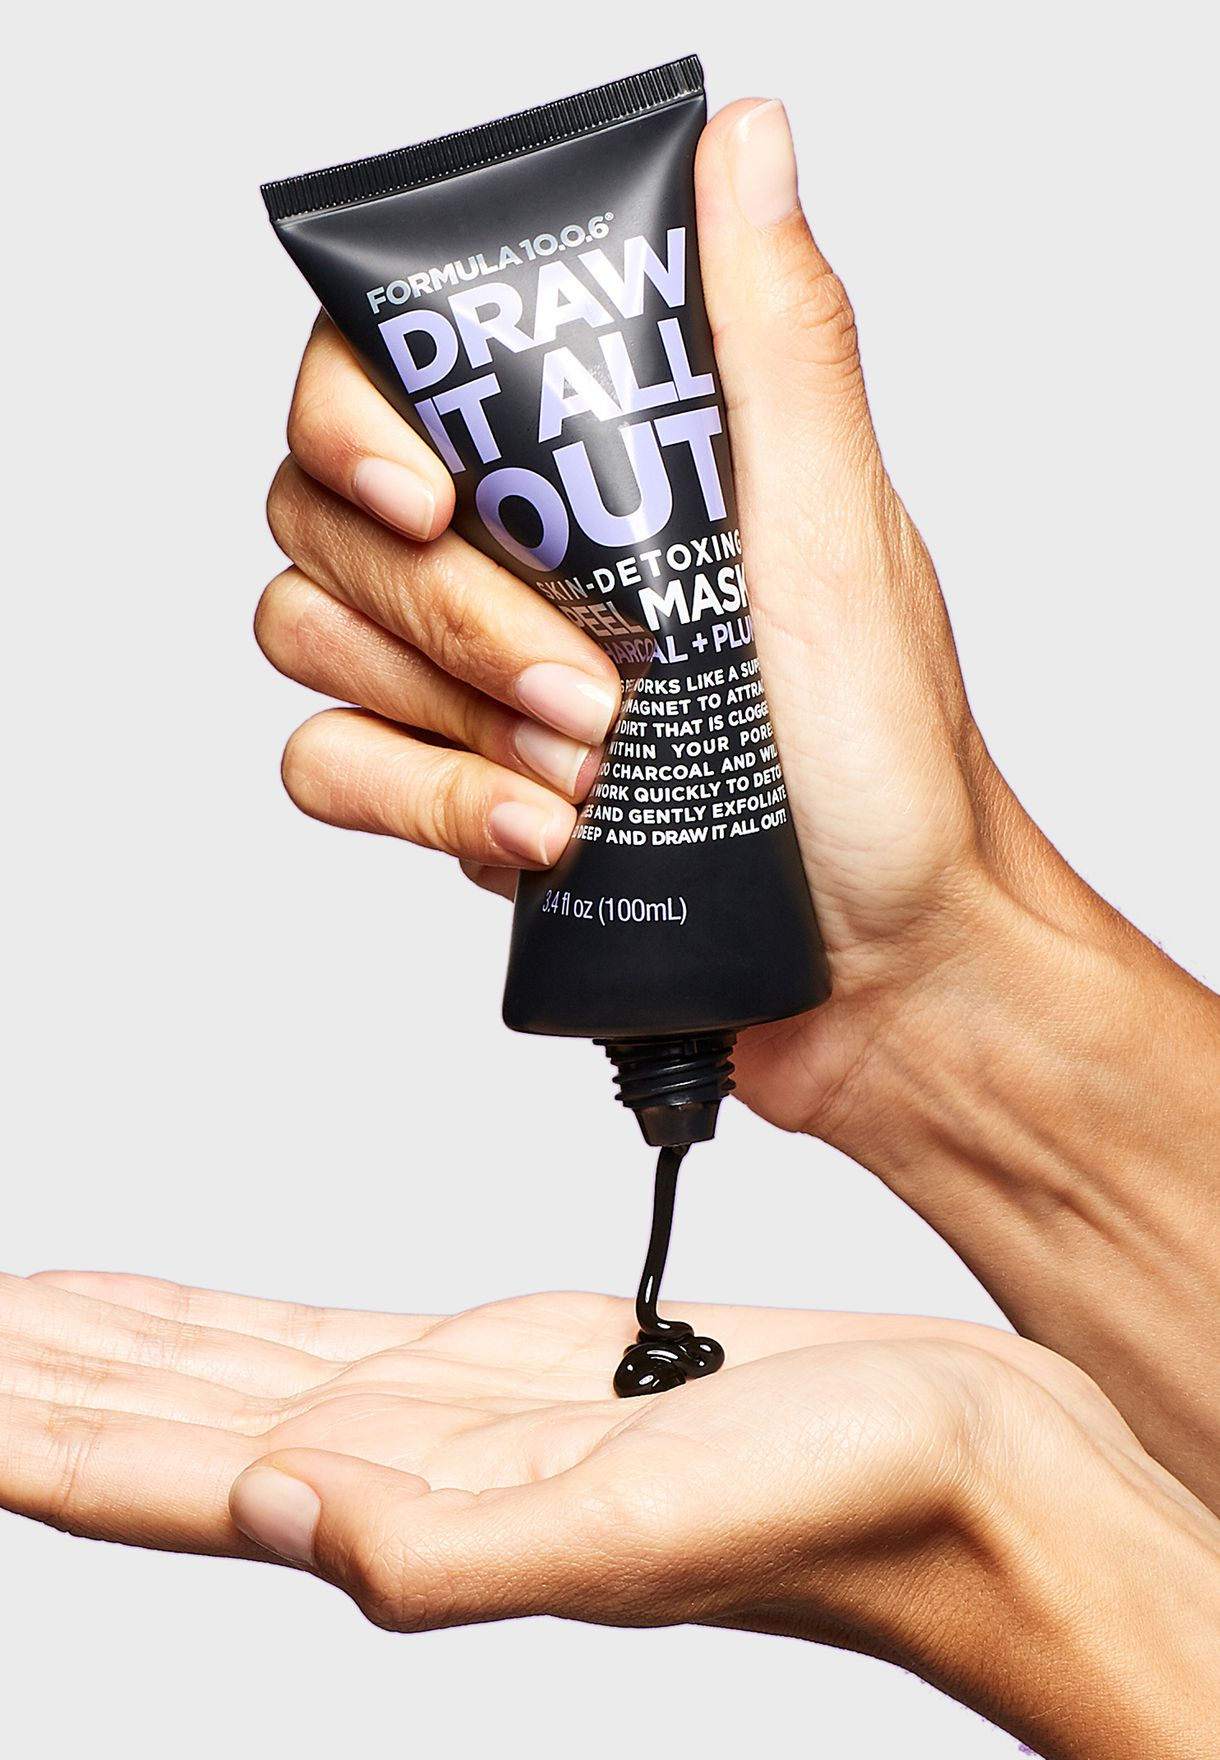 Draw It All Out - Peel Mask